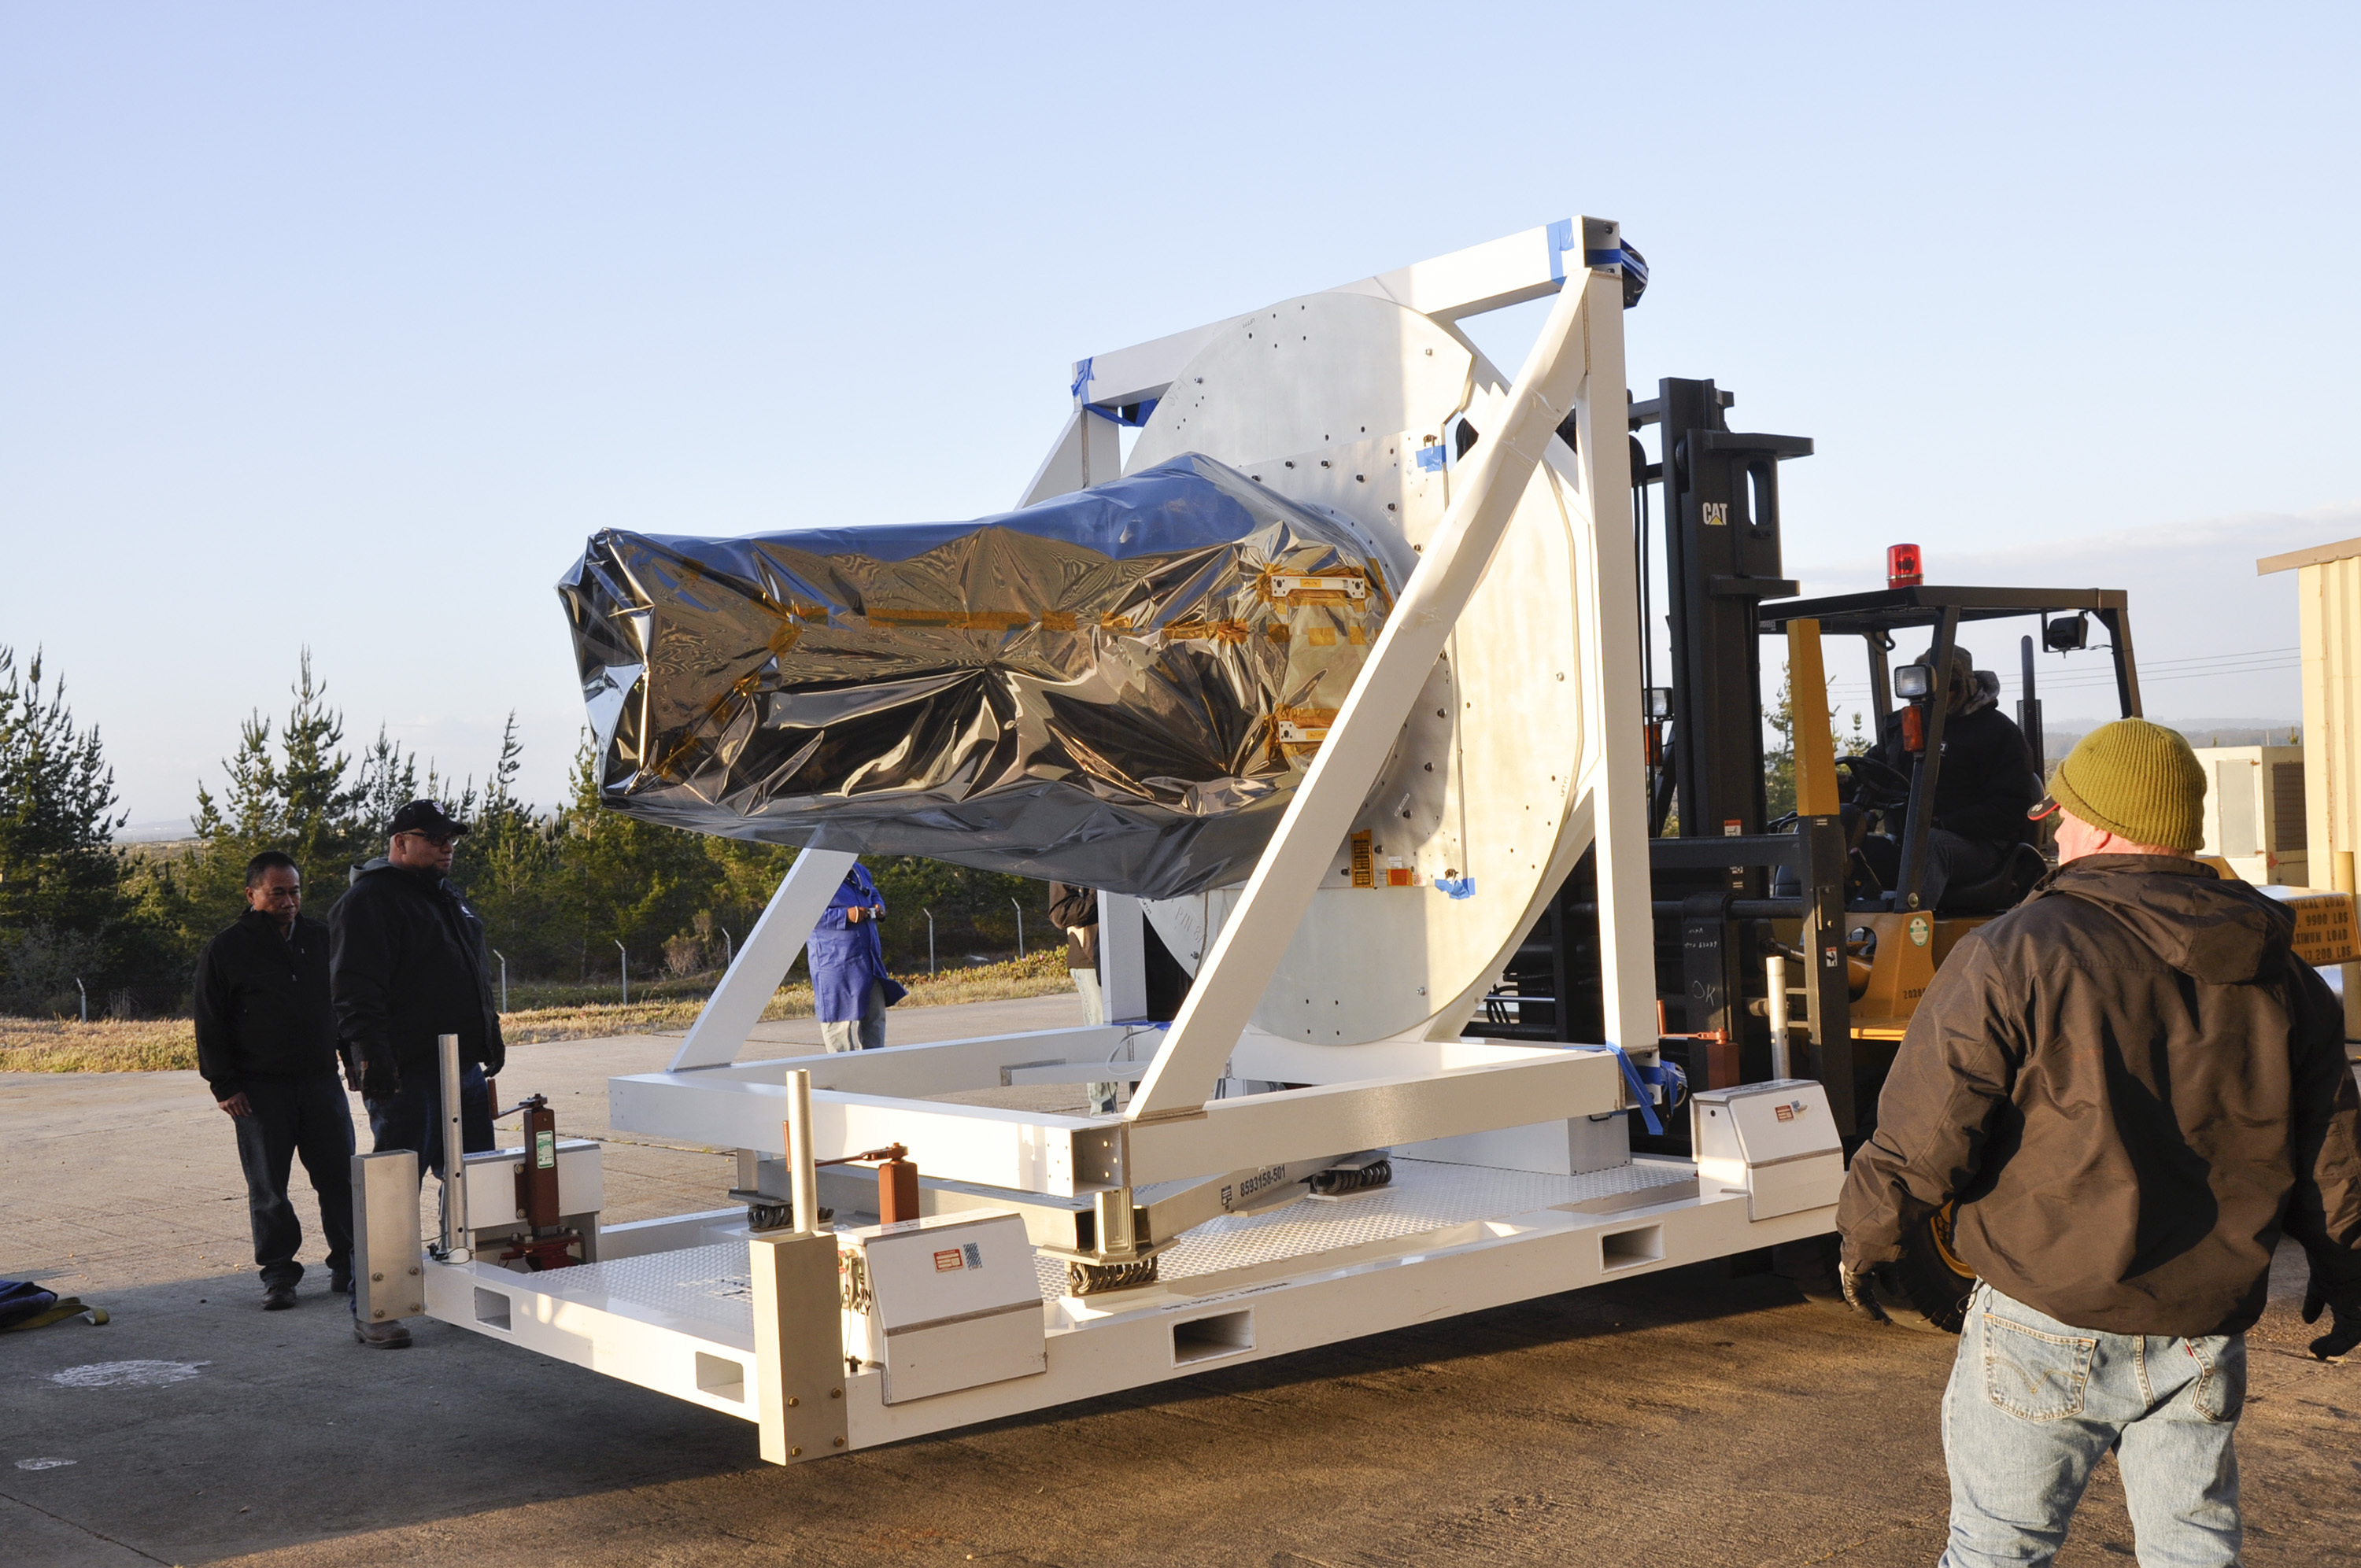 NASA's Newest Solar Satellite Arrives at Vandenberg AFB ...